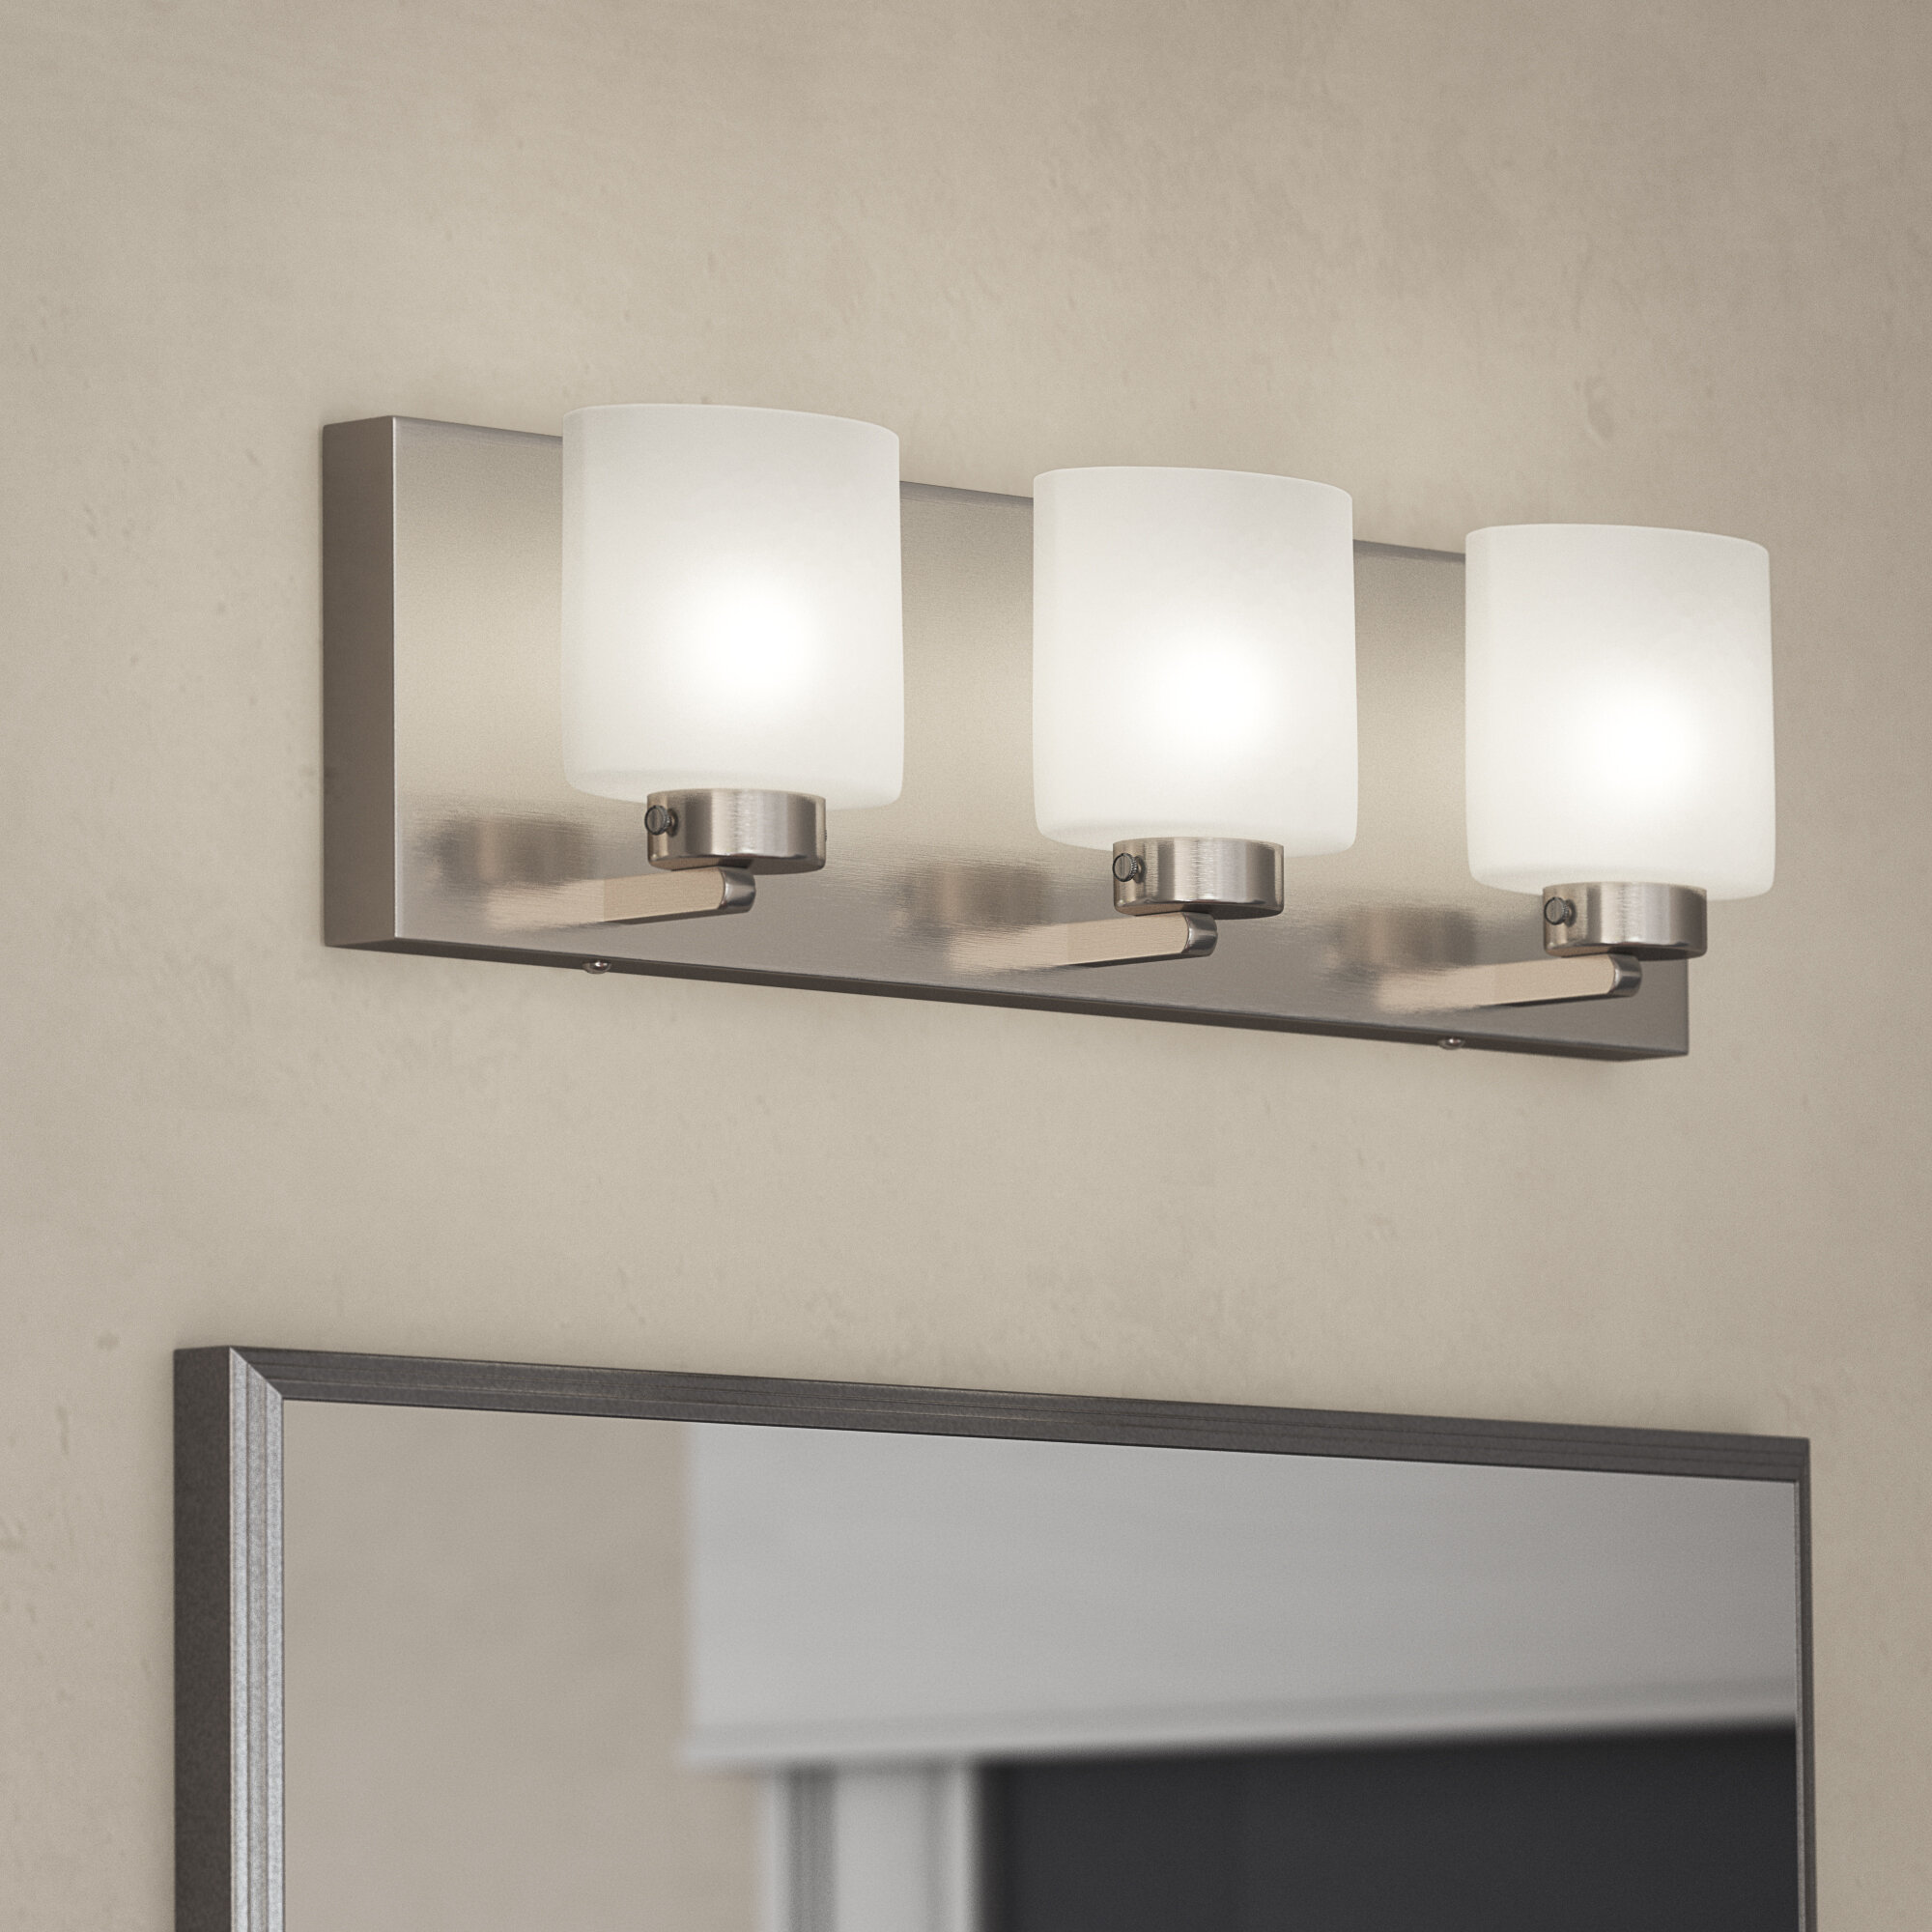 Dry Location Led Bathroom Vanity Lighting You Ll Love In 2021 Wayfair